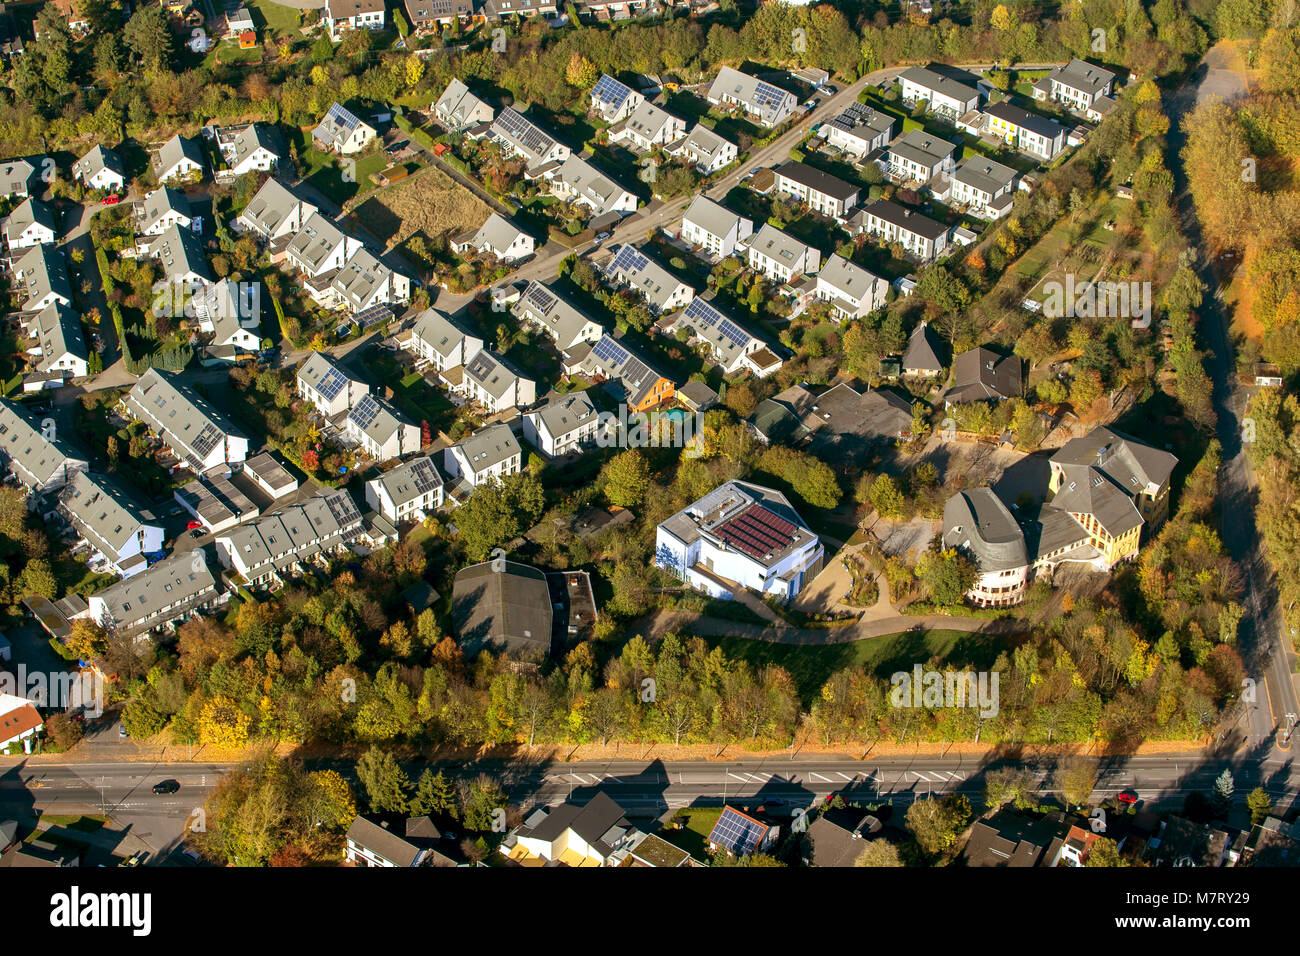 School Houses Stock Photos & School Houses Stock Images - Alamy